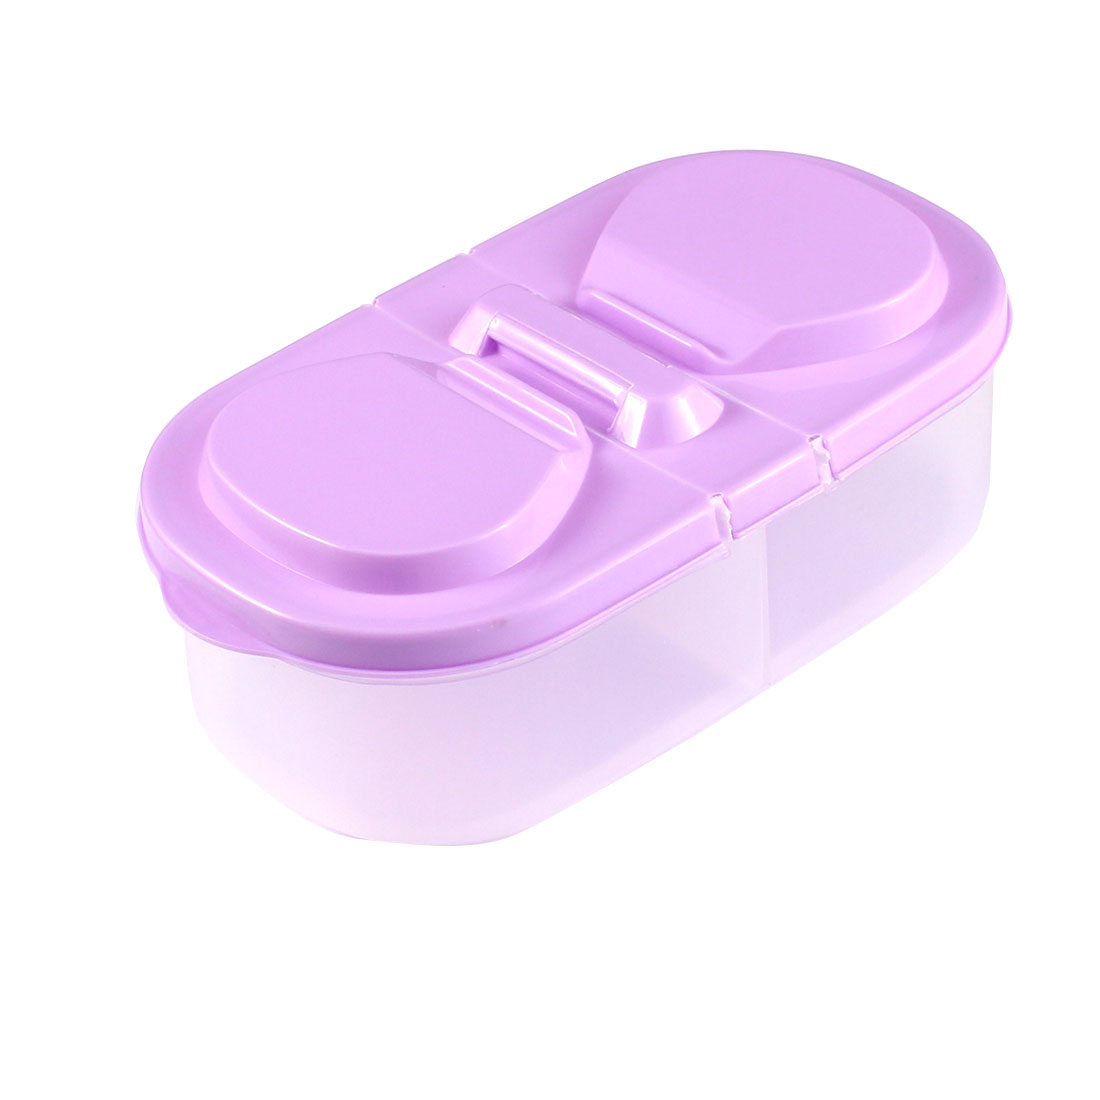 Household Plastic 2 Compartments Food Storage Box Light Purple